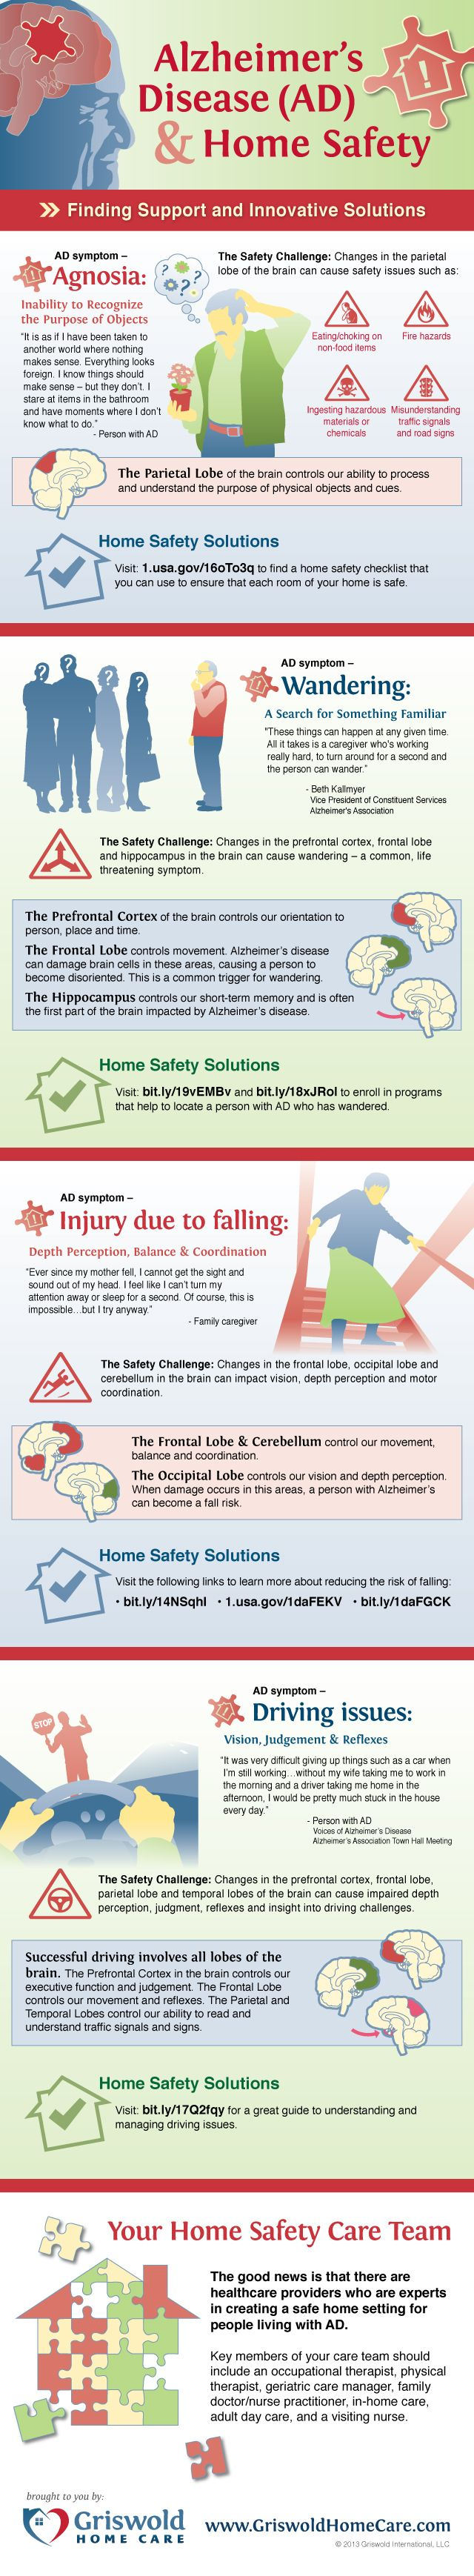 Alzheimer's Disease and Home Safety Infographic